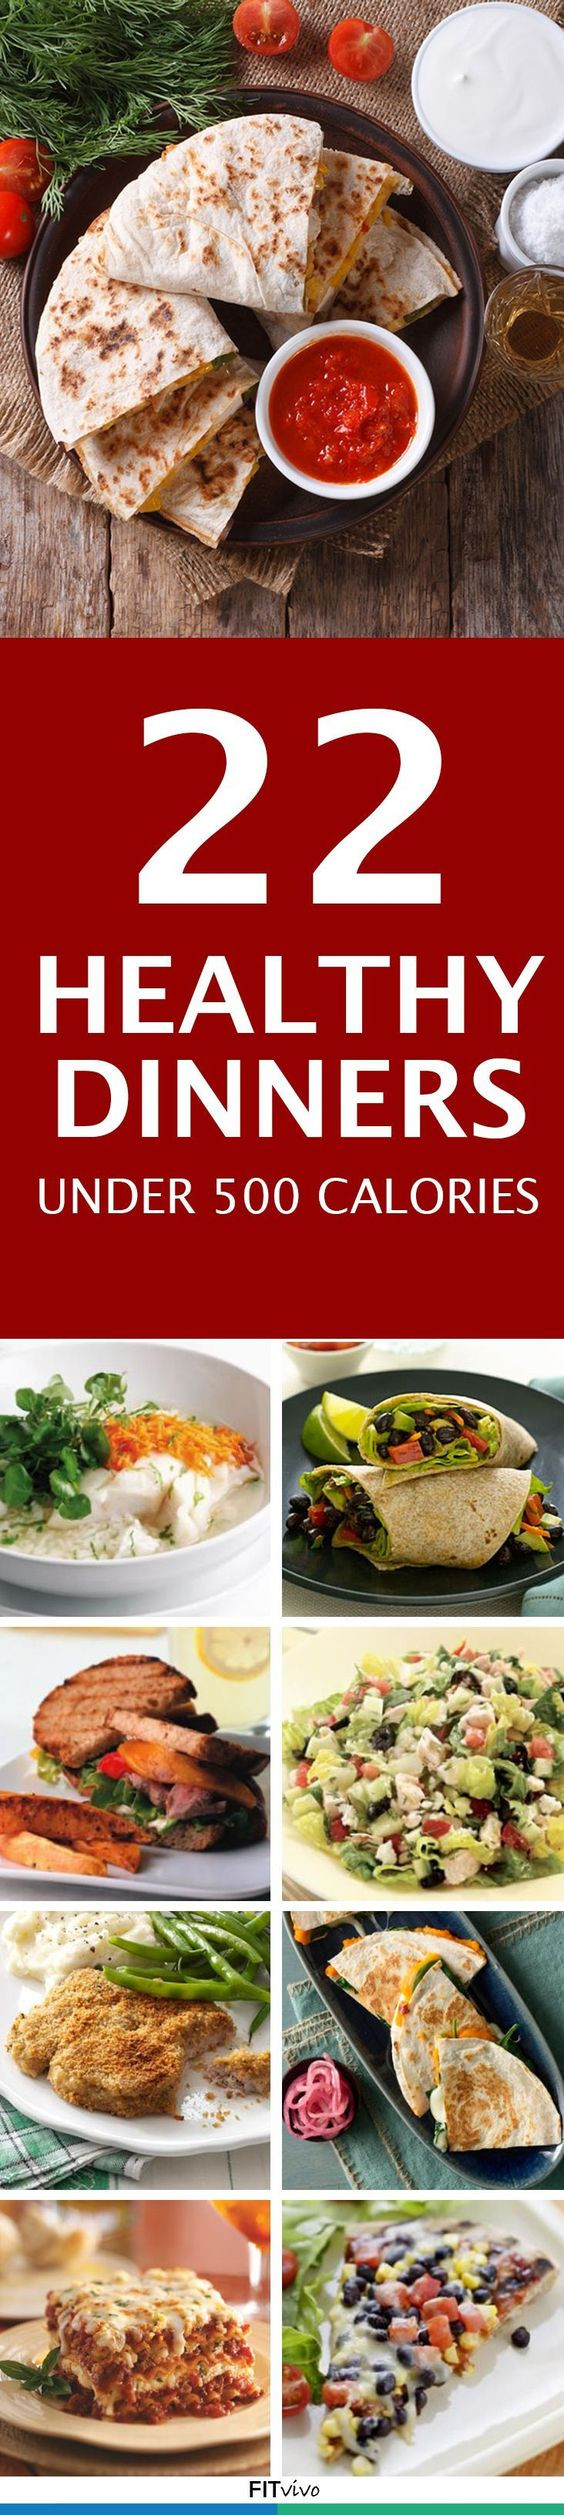 Cheap Low Calorie Dinners  Healthy Dinner Recipes 22 Meal Recipes Under 500